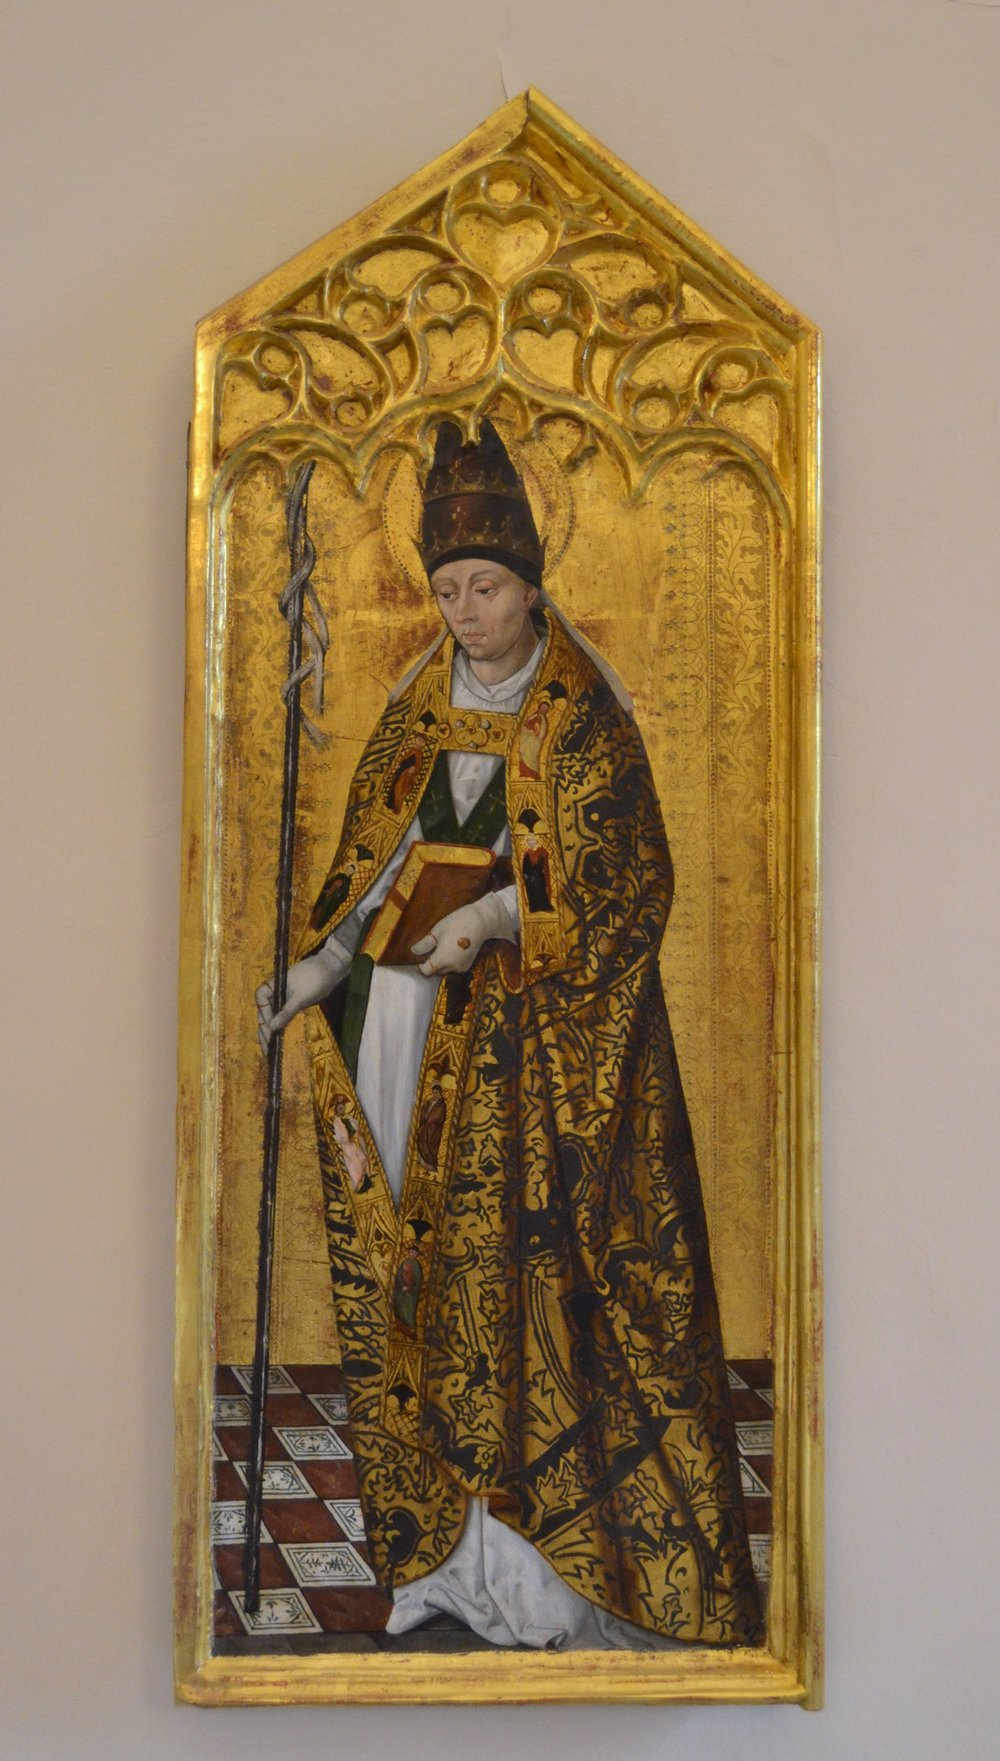 A sixteenth-century panel painting of Pope Saint Gregory the Great in the papal tiara and a pluvial cope. Image via WikiCommons.